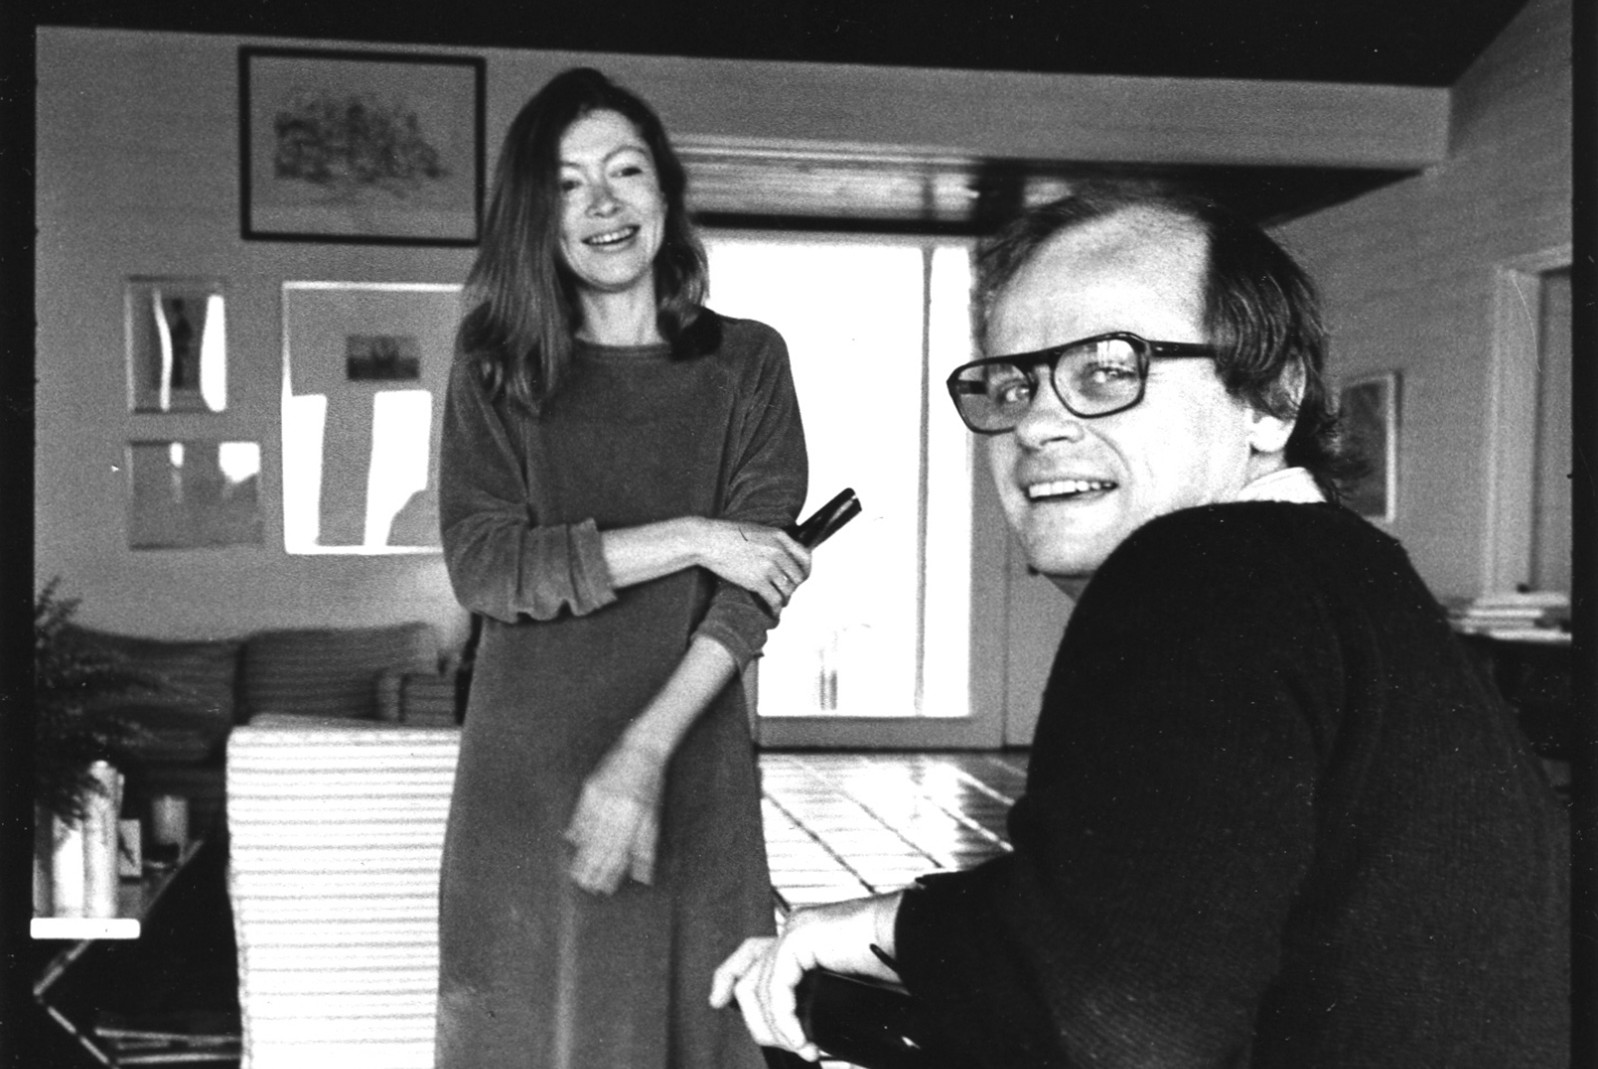 on going home by joan didion essay Writing about joan didion can seem superfluous after all, it is joan didion who has written most widely about joan didion perhaps more than with any other author, didion's personality is impossible to separate from the pages of her work.